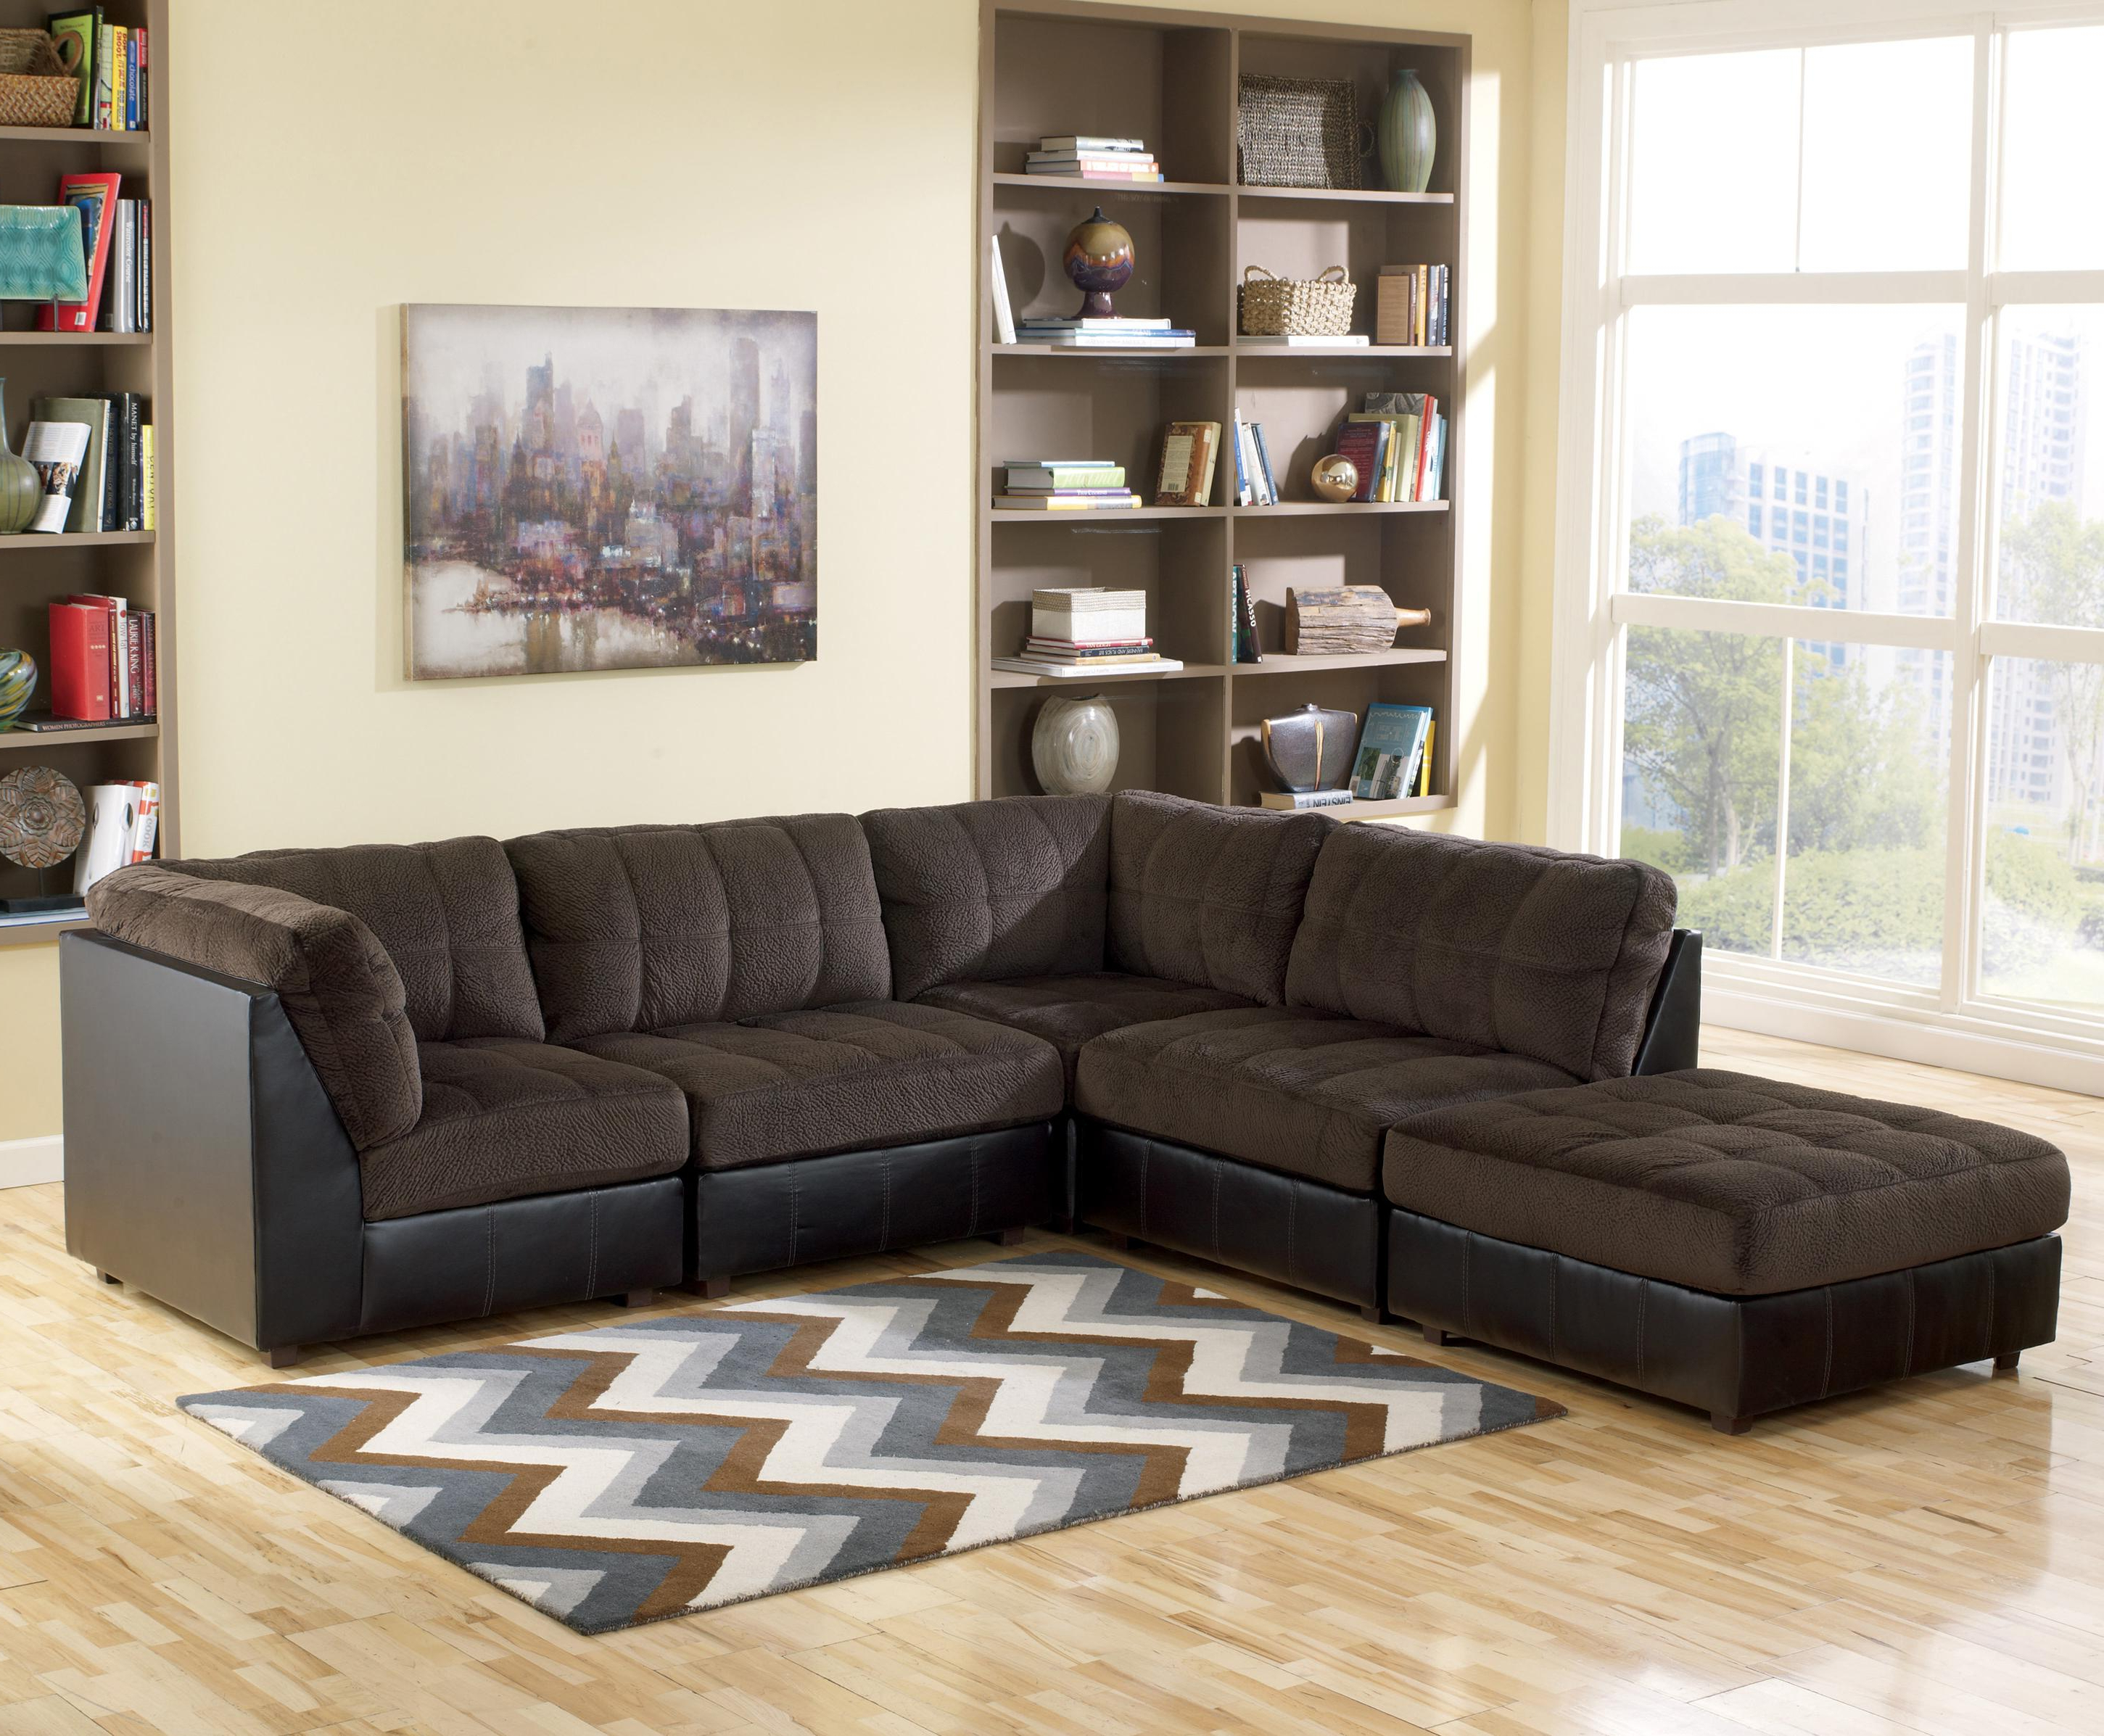 Signature Designashley Hobokin – Chocolate Contemporary 5 Piece Intended For Most Recently Released Norfolk Chocolate 3 Piece Sectionals With Raf Chaise (View 16 of 20)